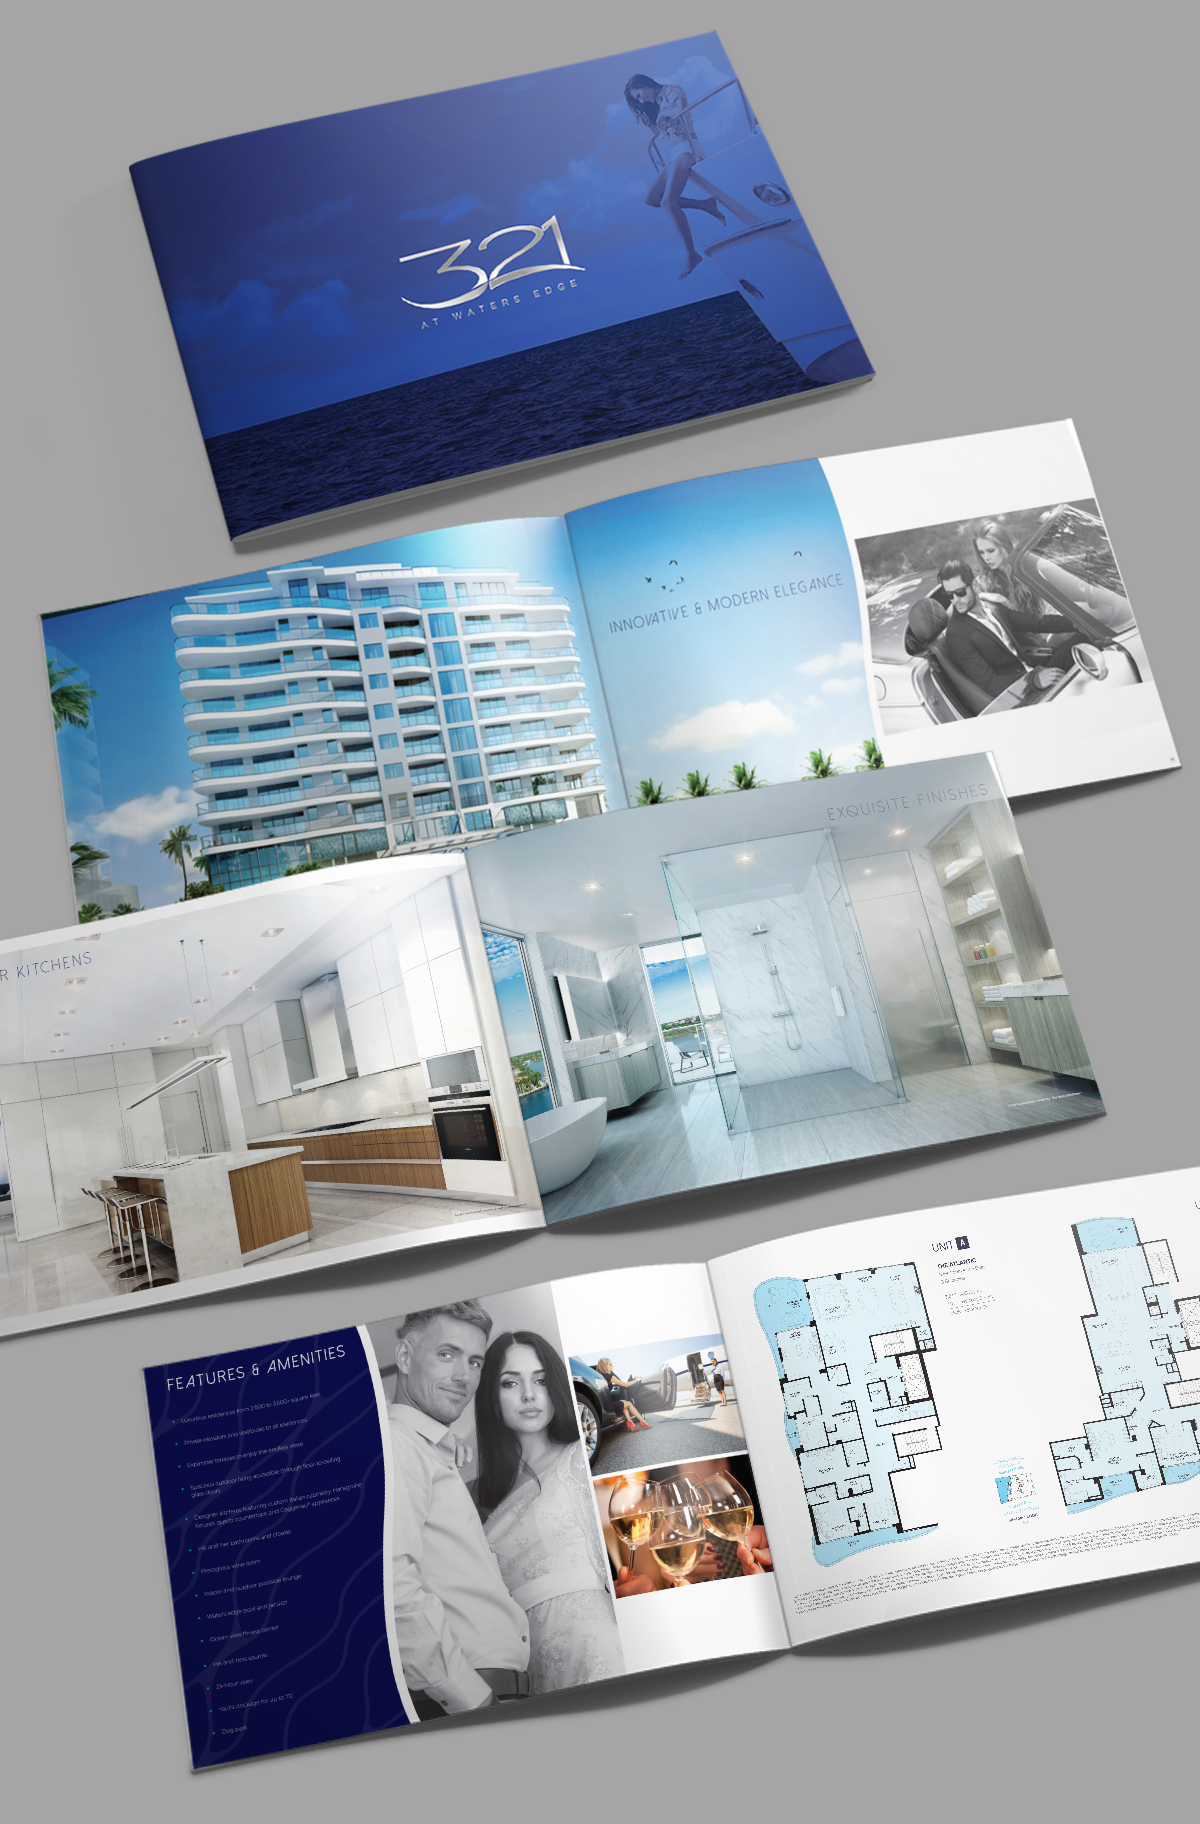 32-Page Brochure Design: Showcasing the building, homes and waterfront lifestyle